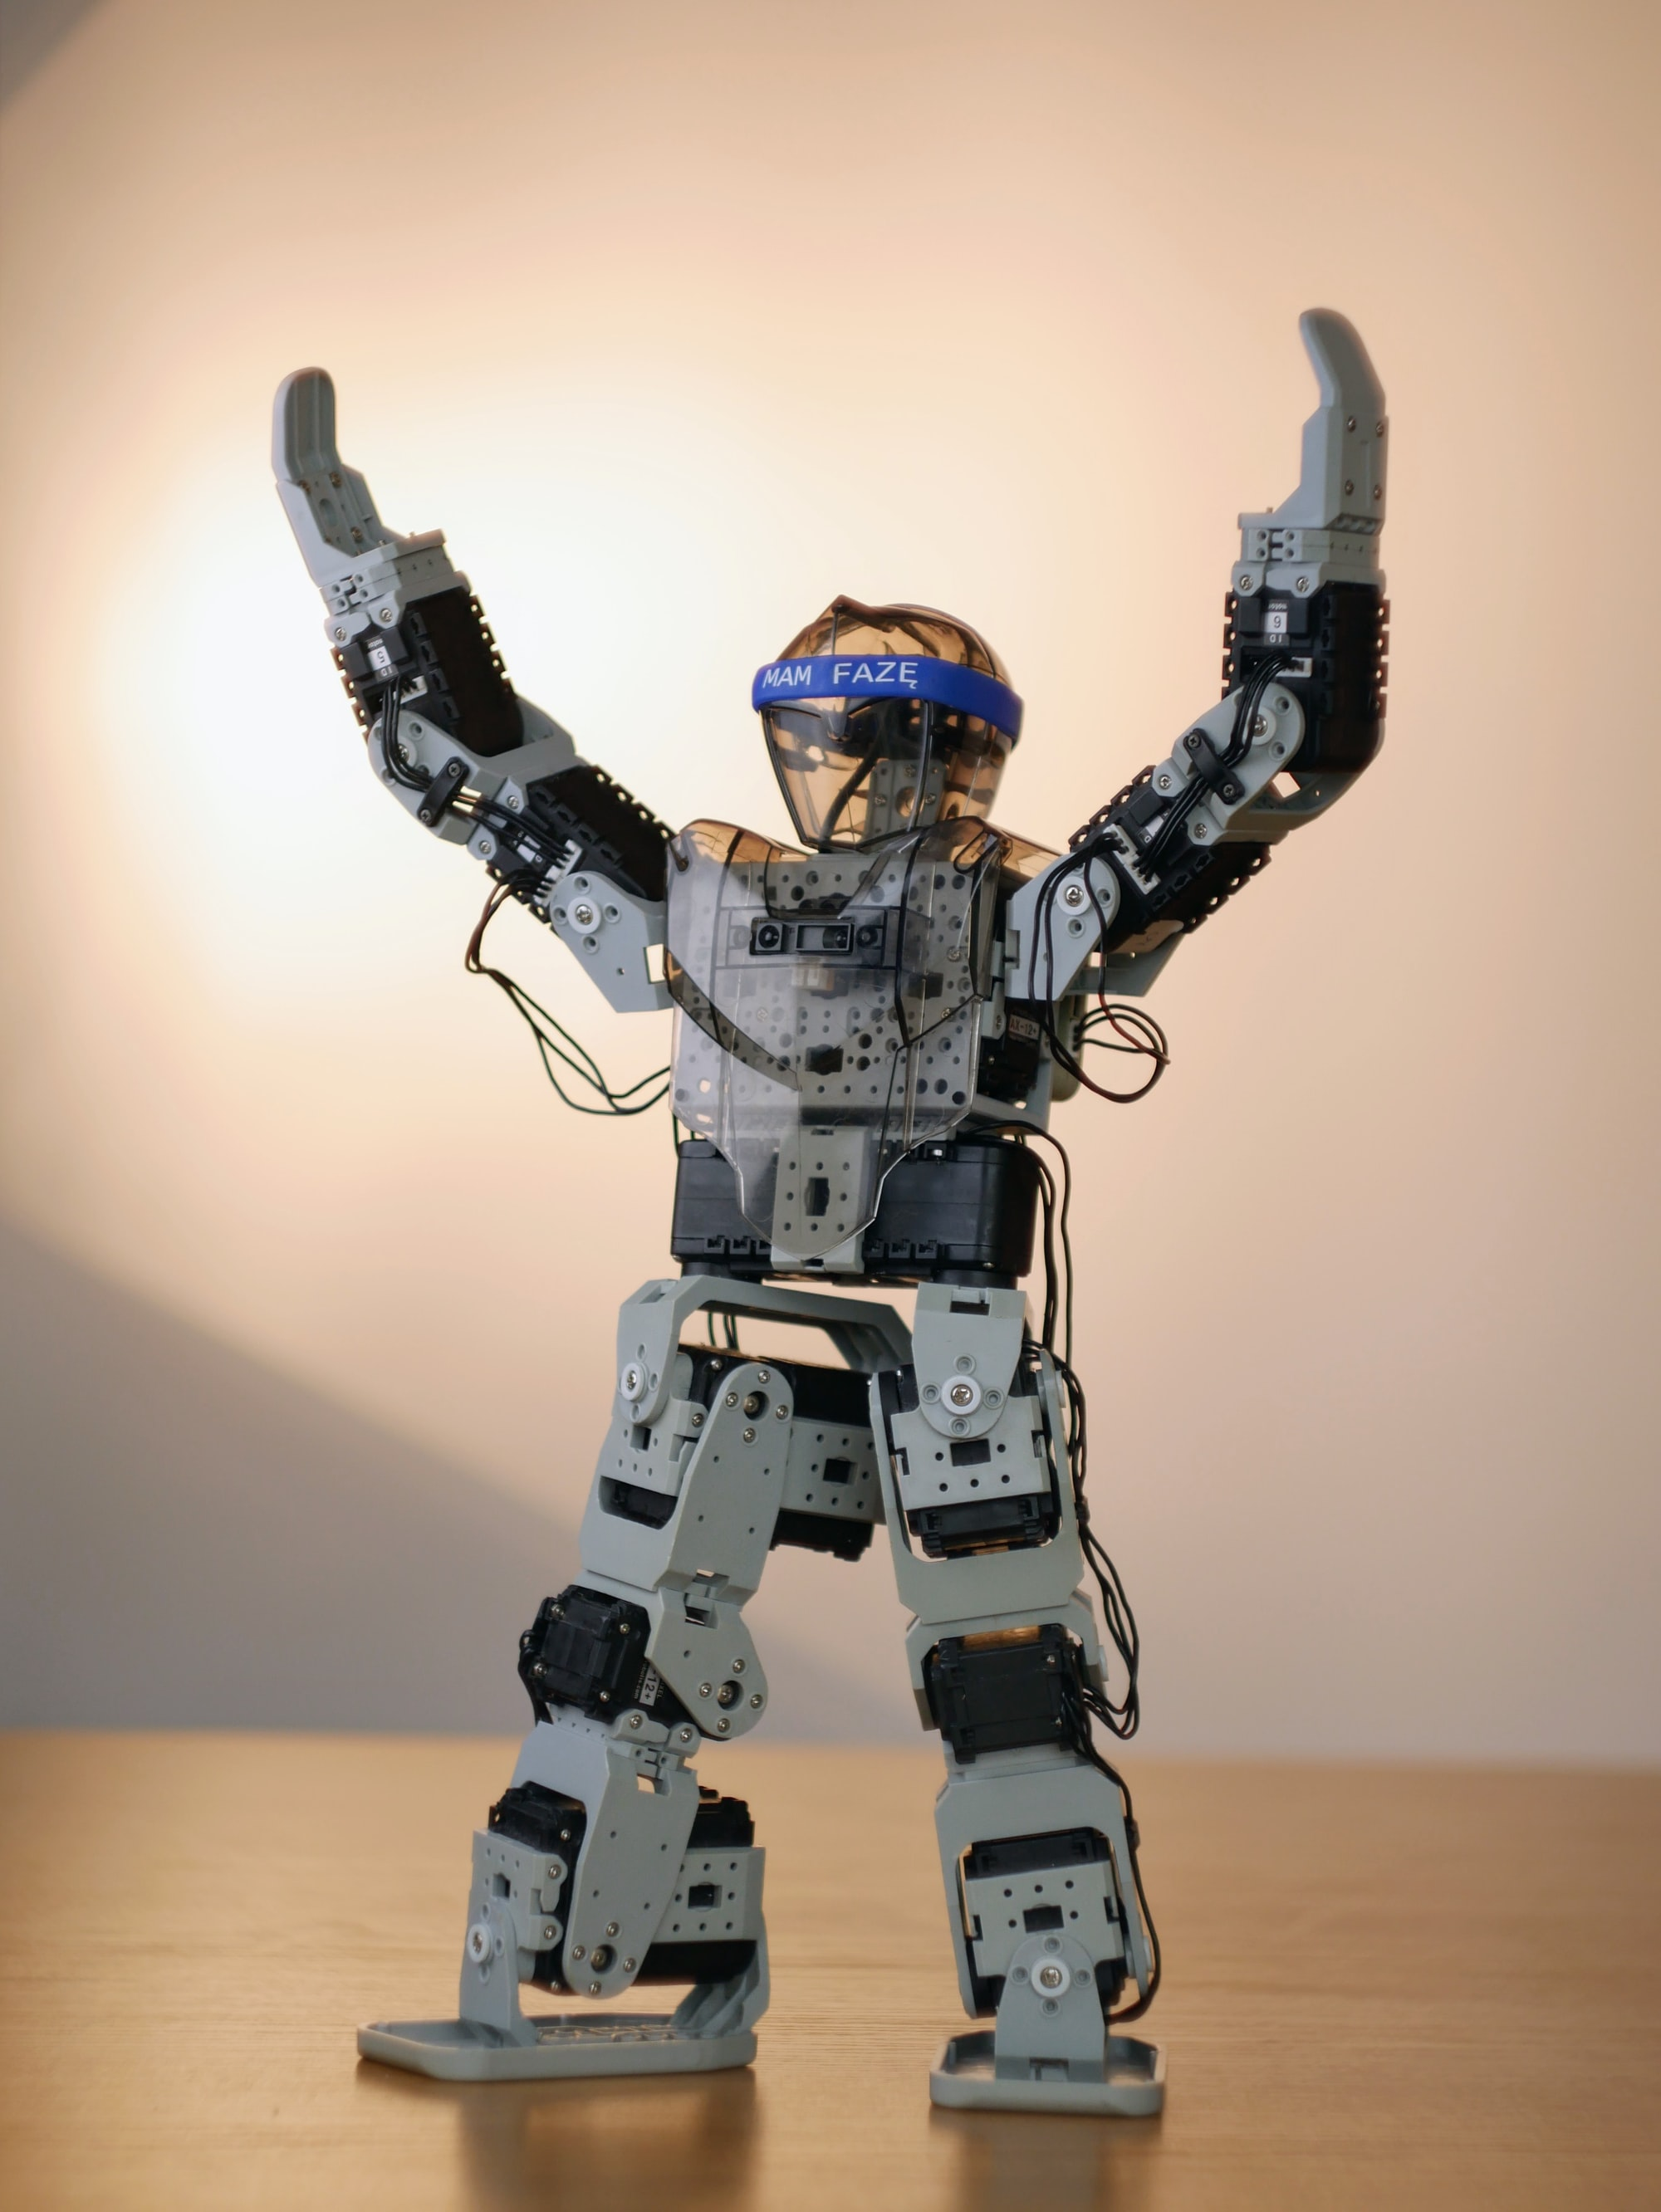 Humanoid robot Robotis Bioloid with the hands in the air, cheering.